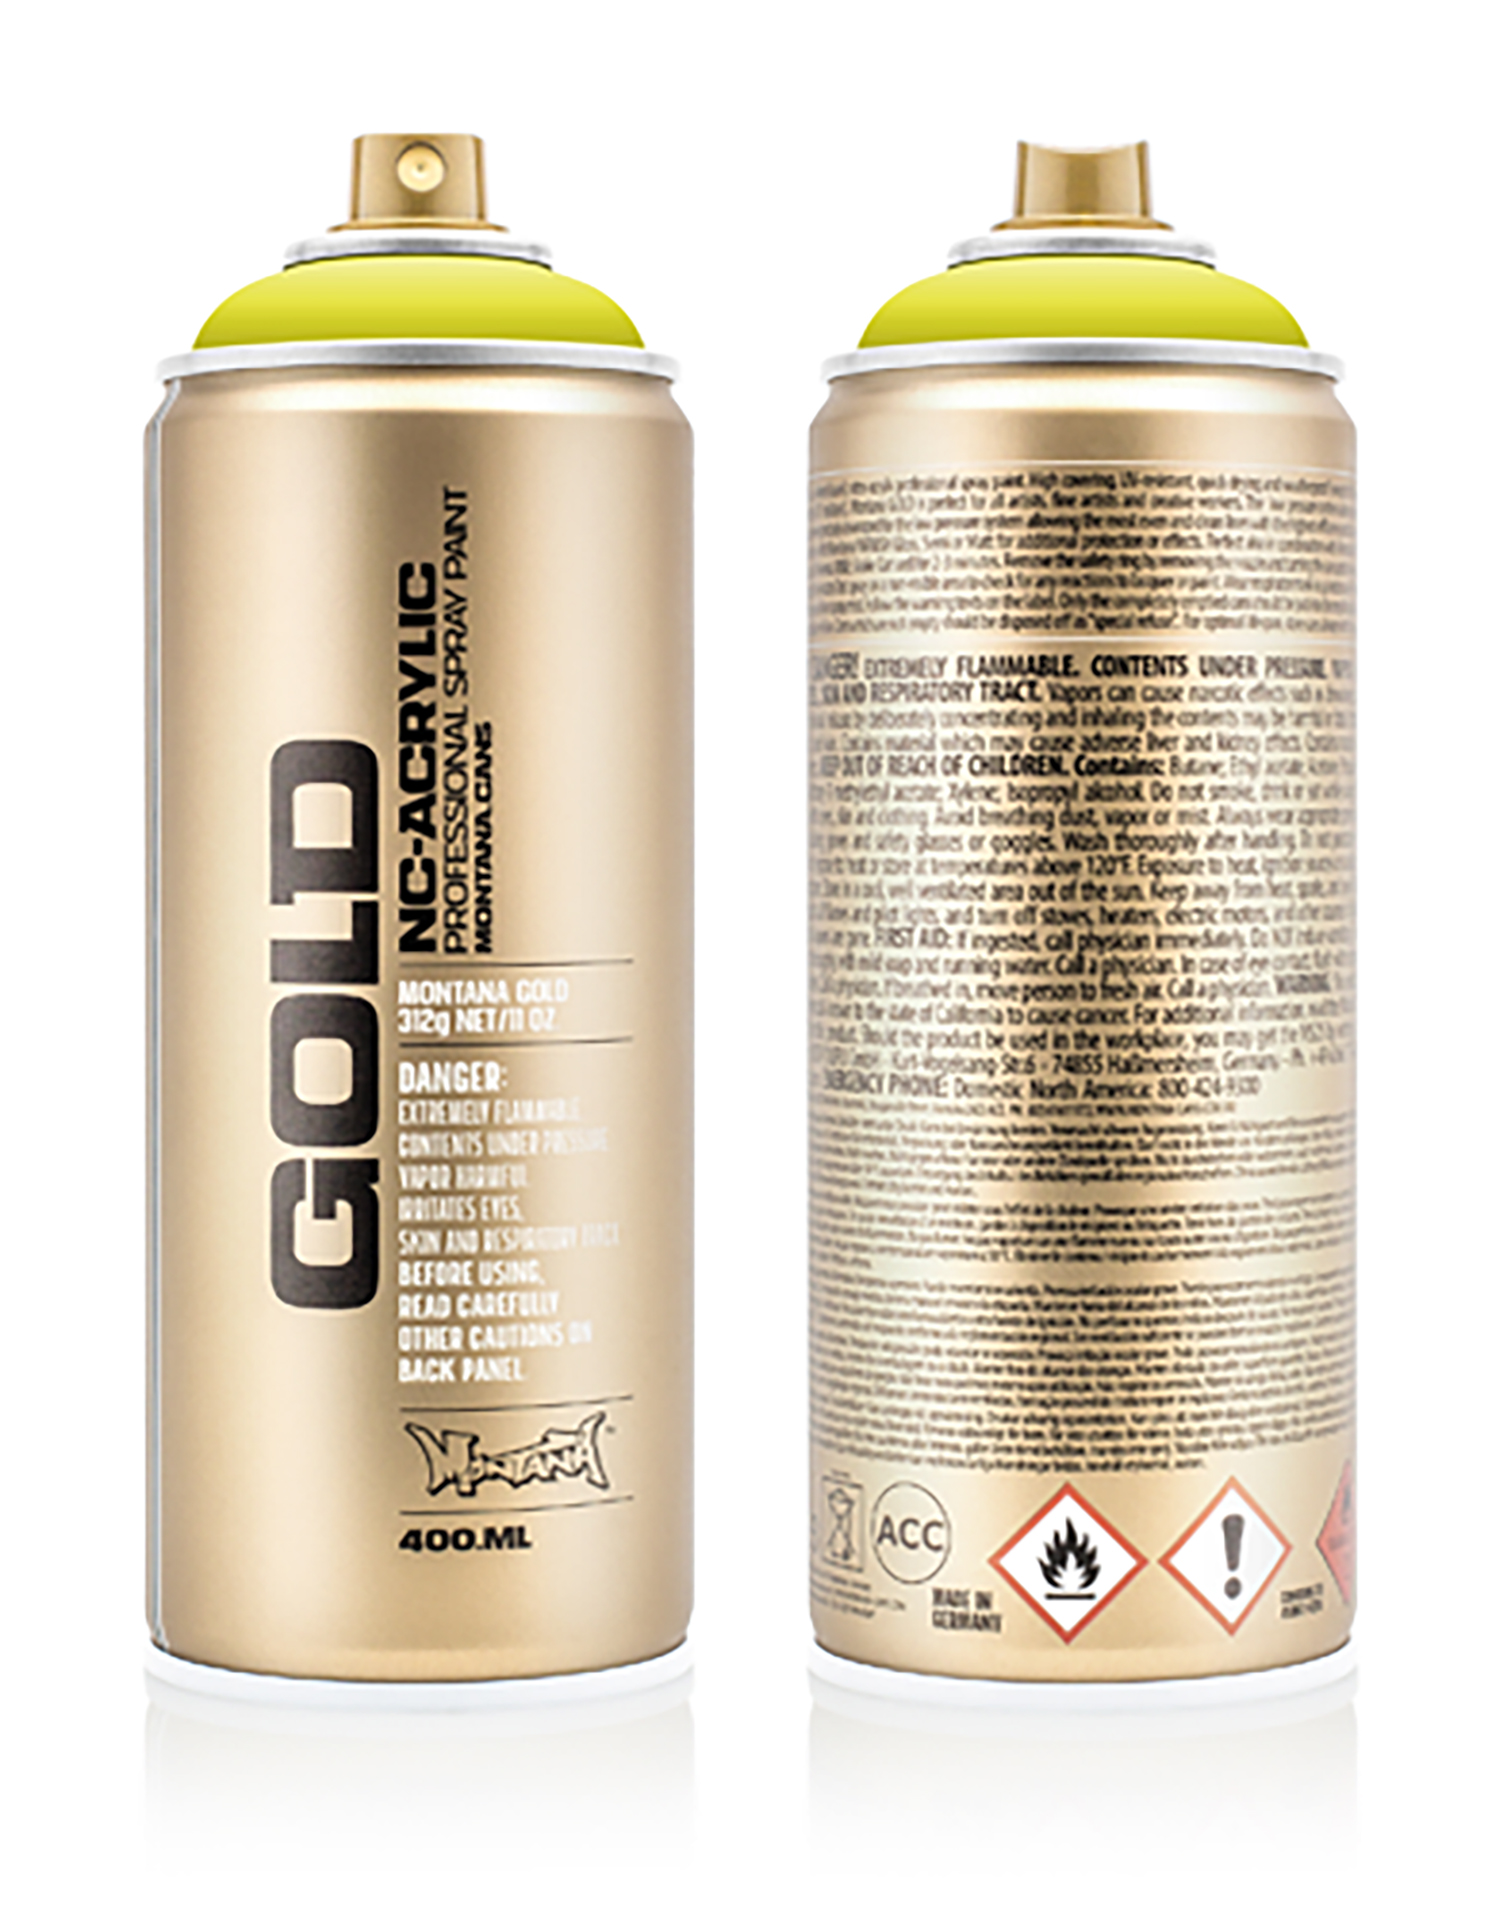 MONTANA-GOLD-SPRAY-400ML-CL-6310